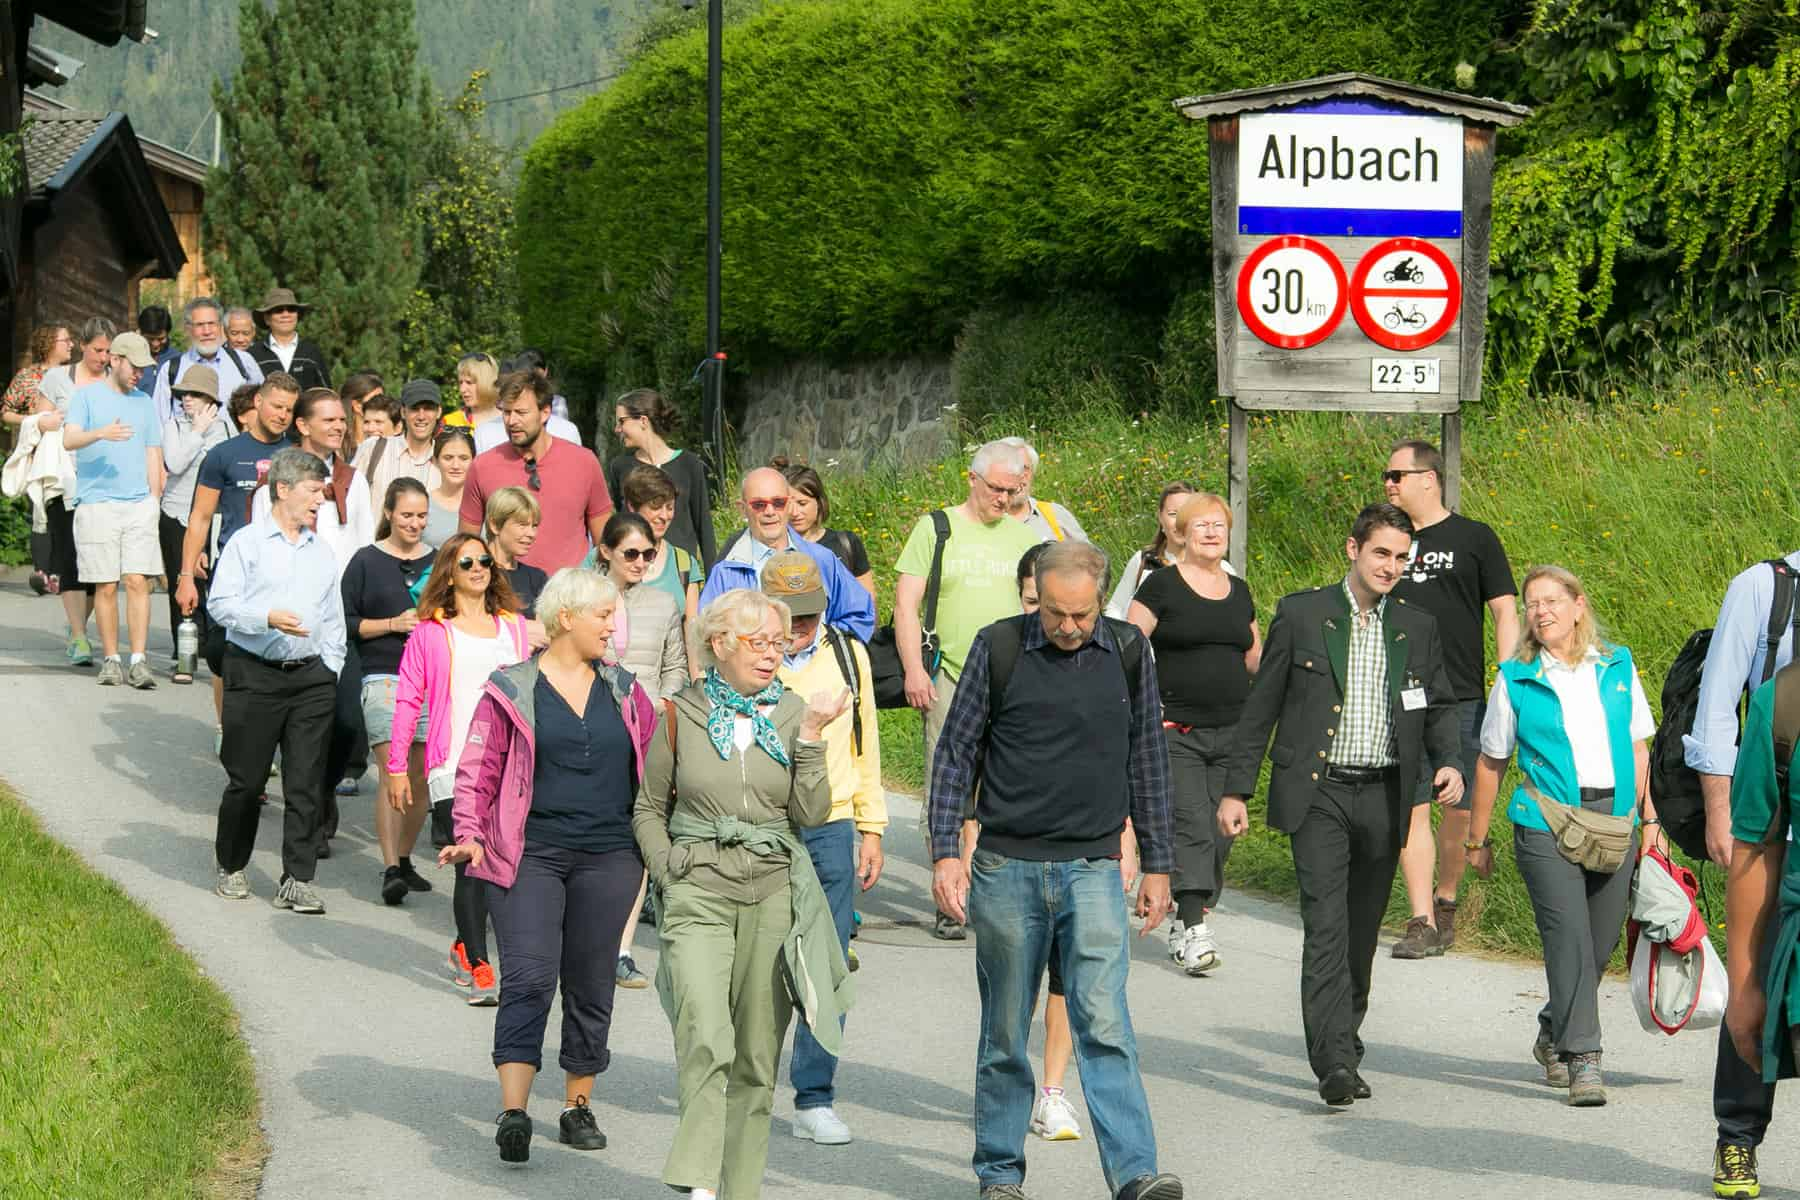 Members of the Alpbach Laxenburg Group and Impact Hub hike in Alpbach, Austria in August 2016. © Matthias Silveri | IIASA